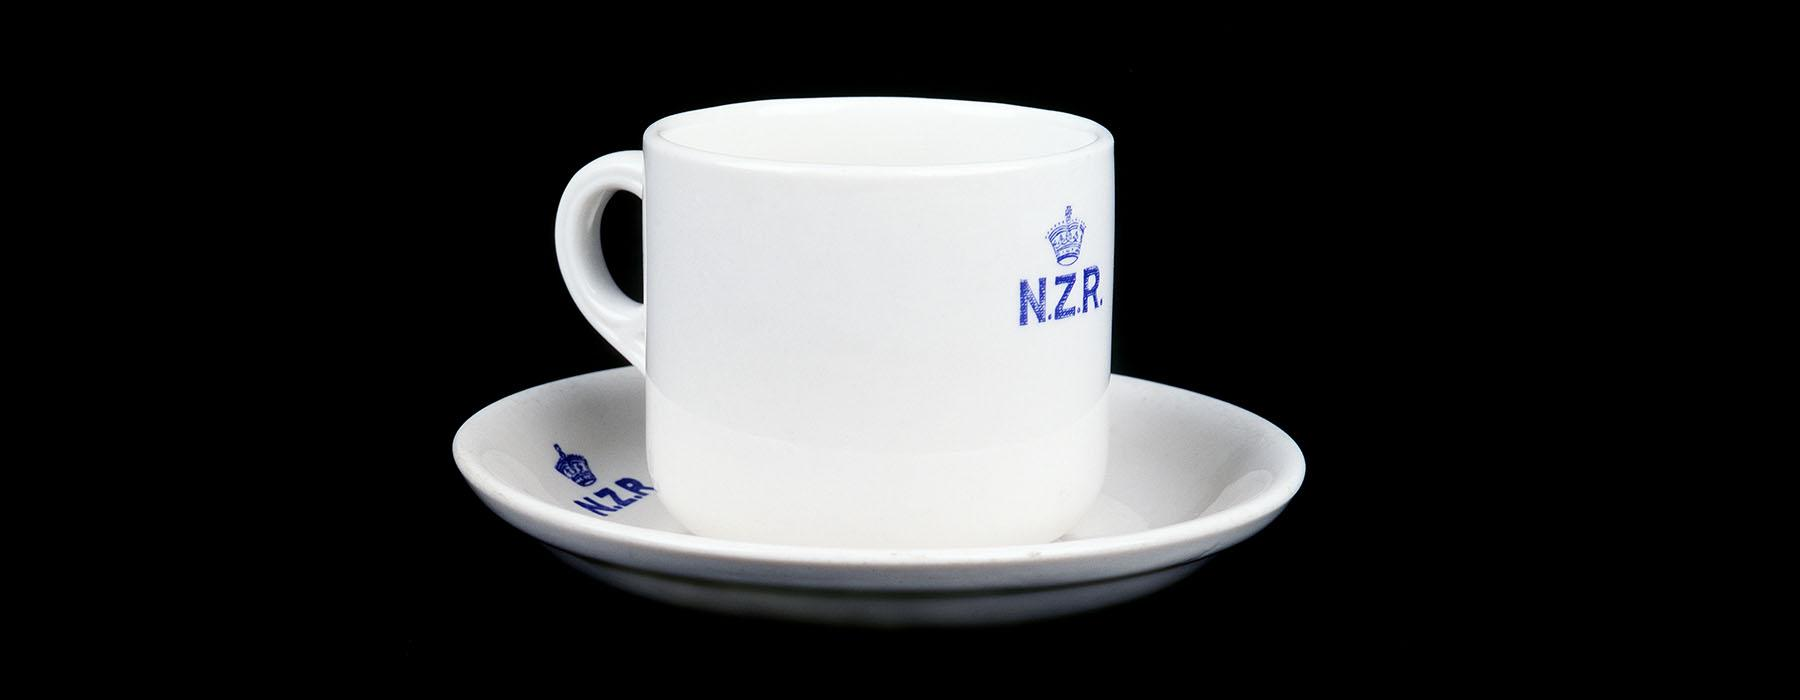 Cup and saucer, 1955, New Zealand, by Crown Lynn Potteries Ltd. CC BY-NC-ND licence. Te Papa (CG001384)